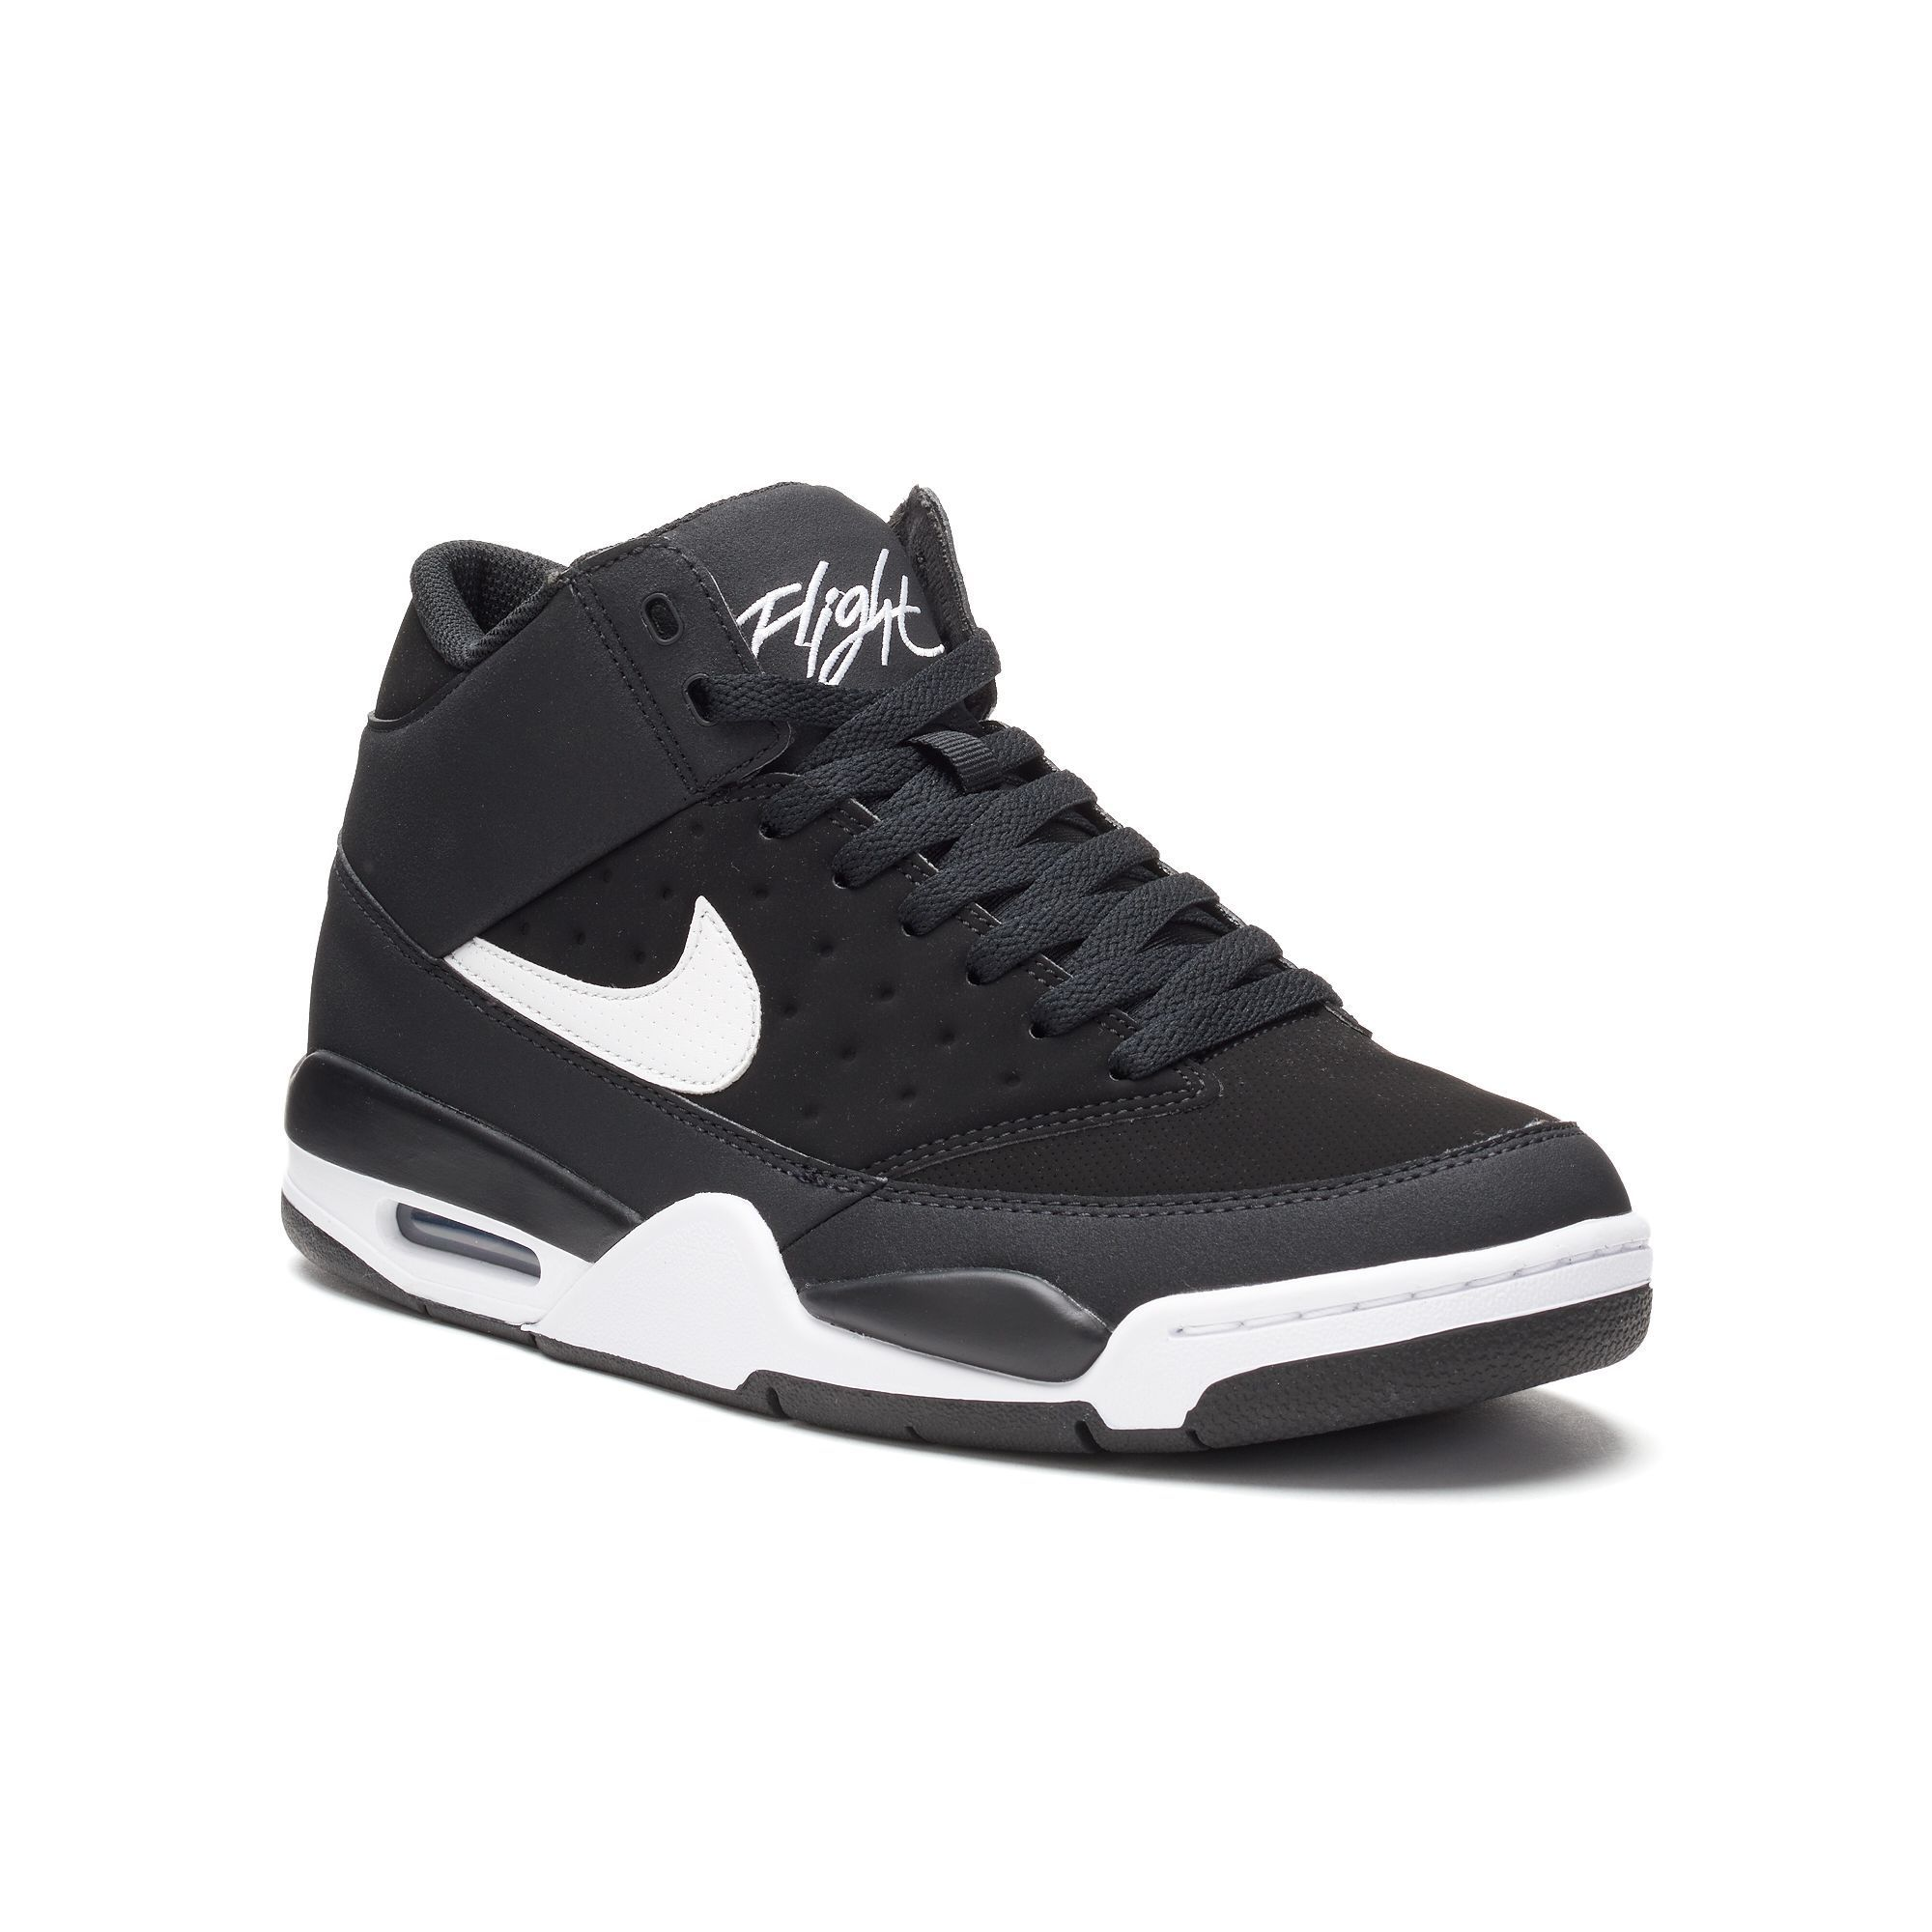 a6c4abdcc93c Nike Air Flight Classic Men s Basketball Shoes in 2019